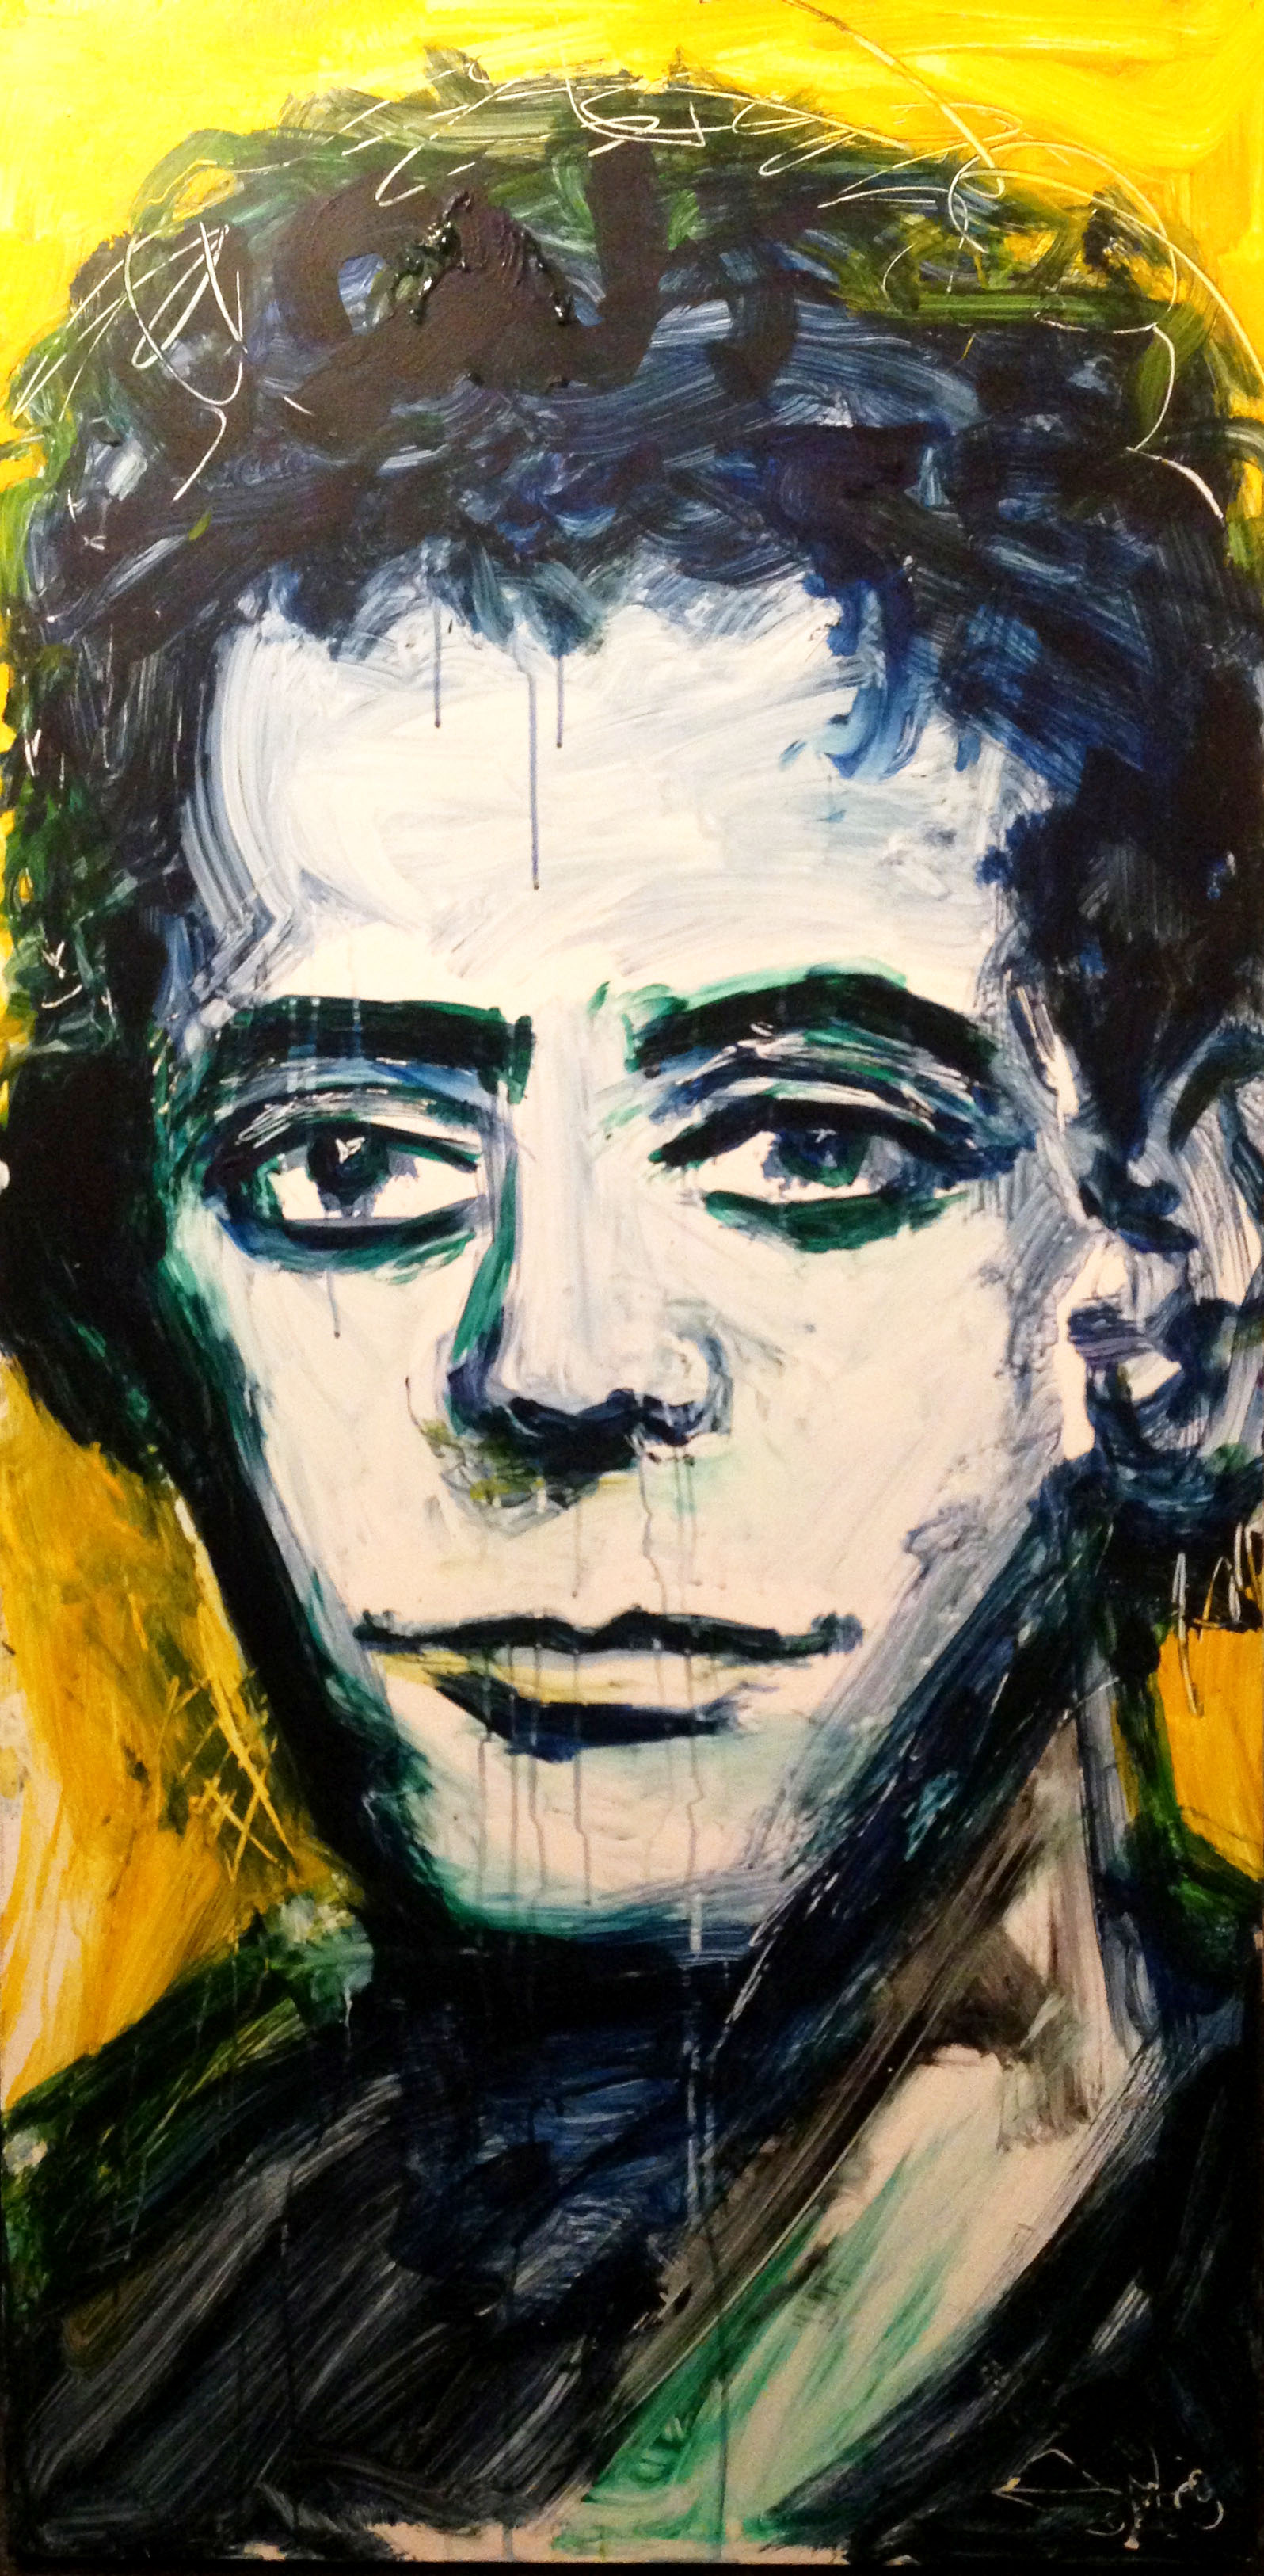 Lou Reed painting created live at East 7th Street Benefit at Theater 80 in NYC